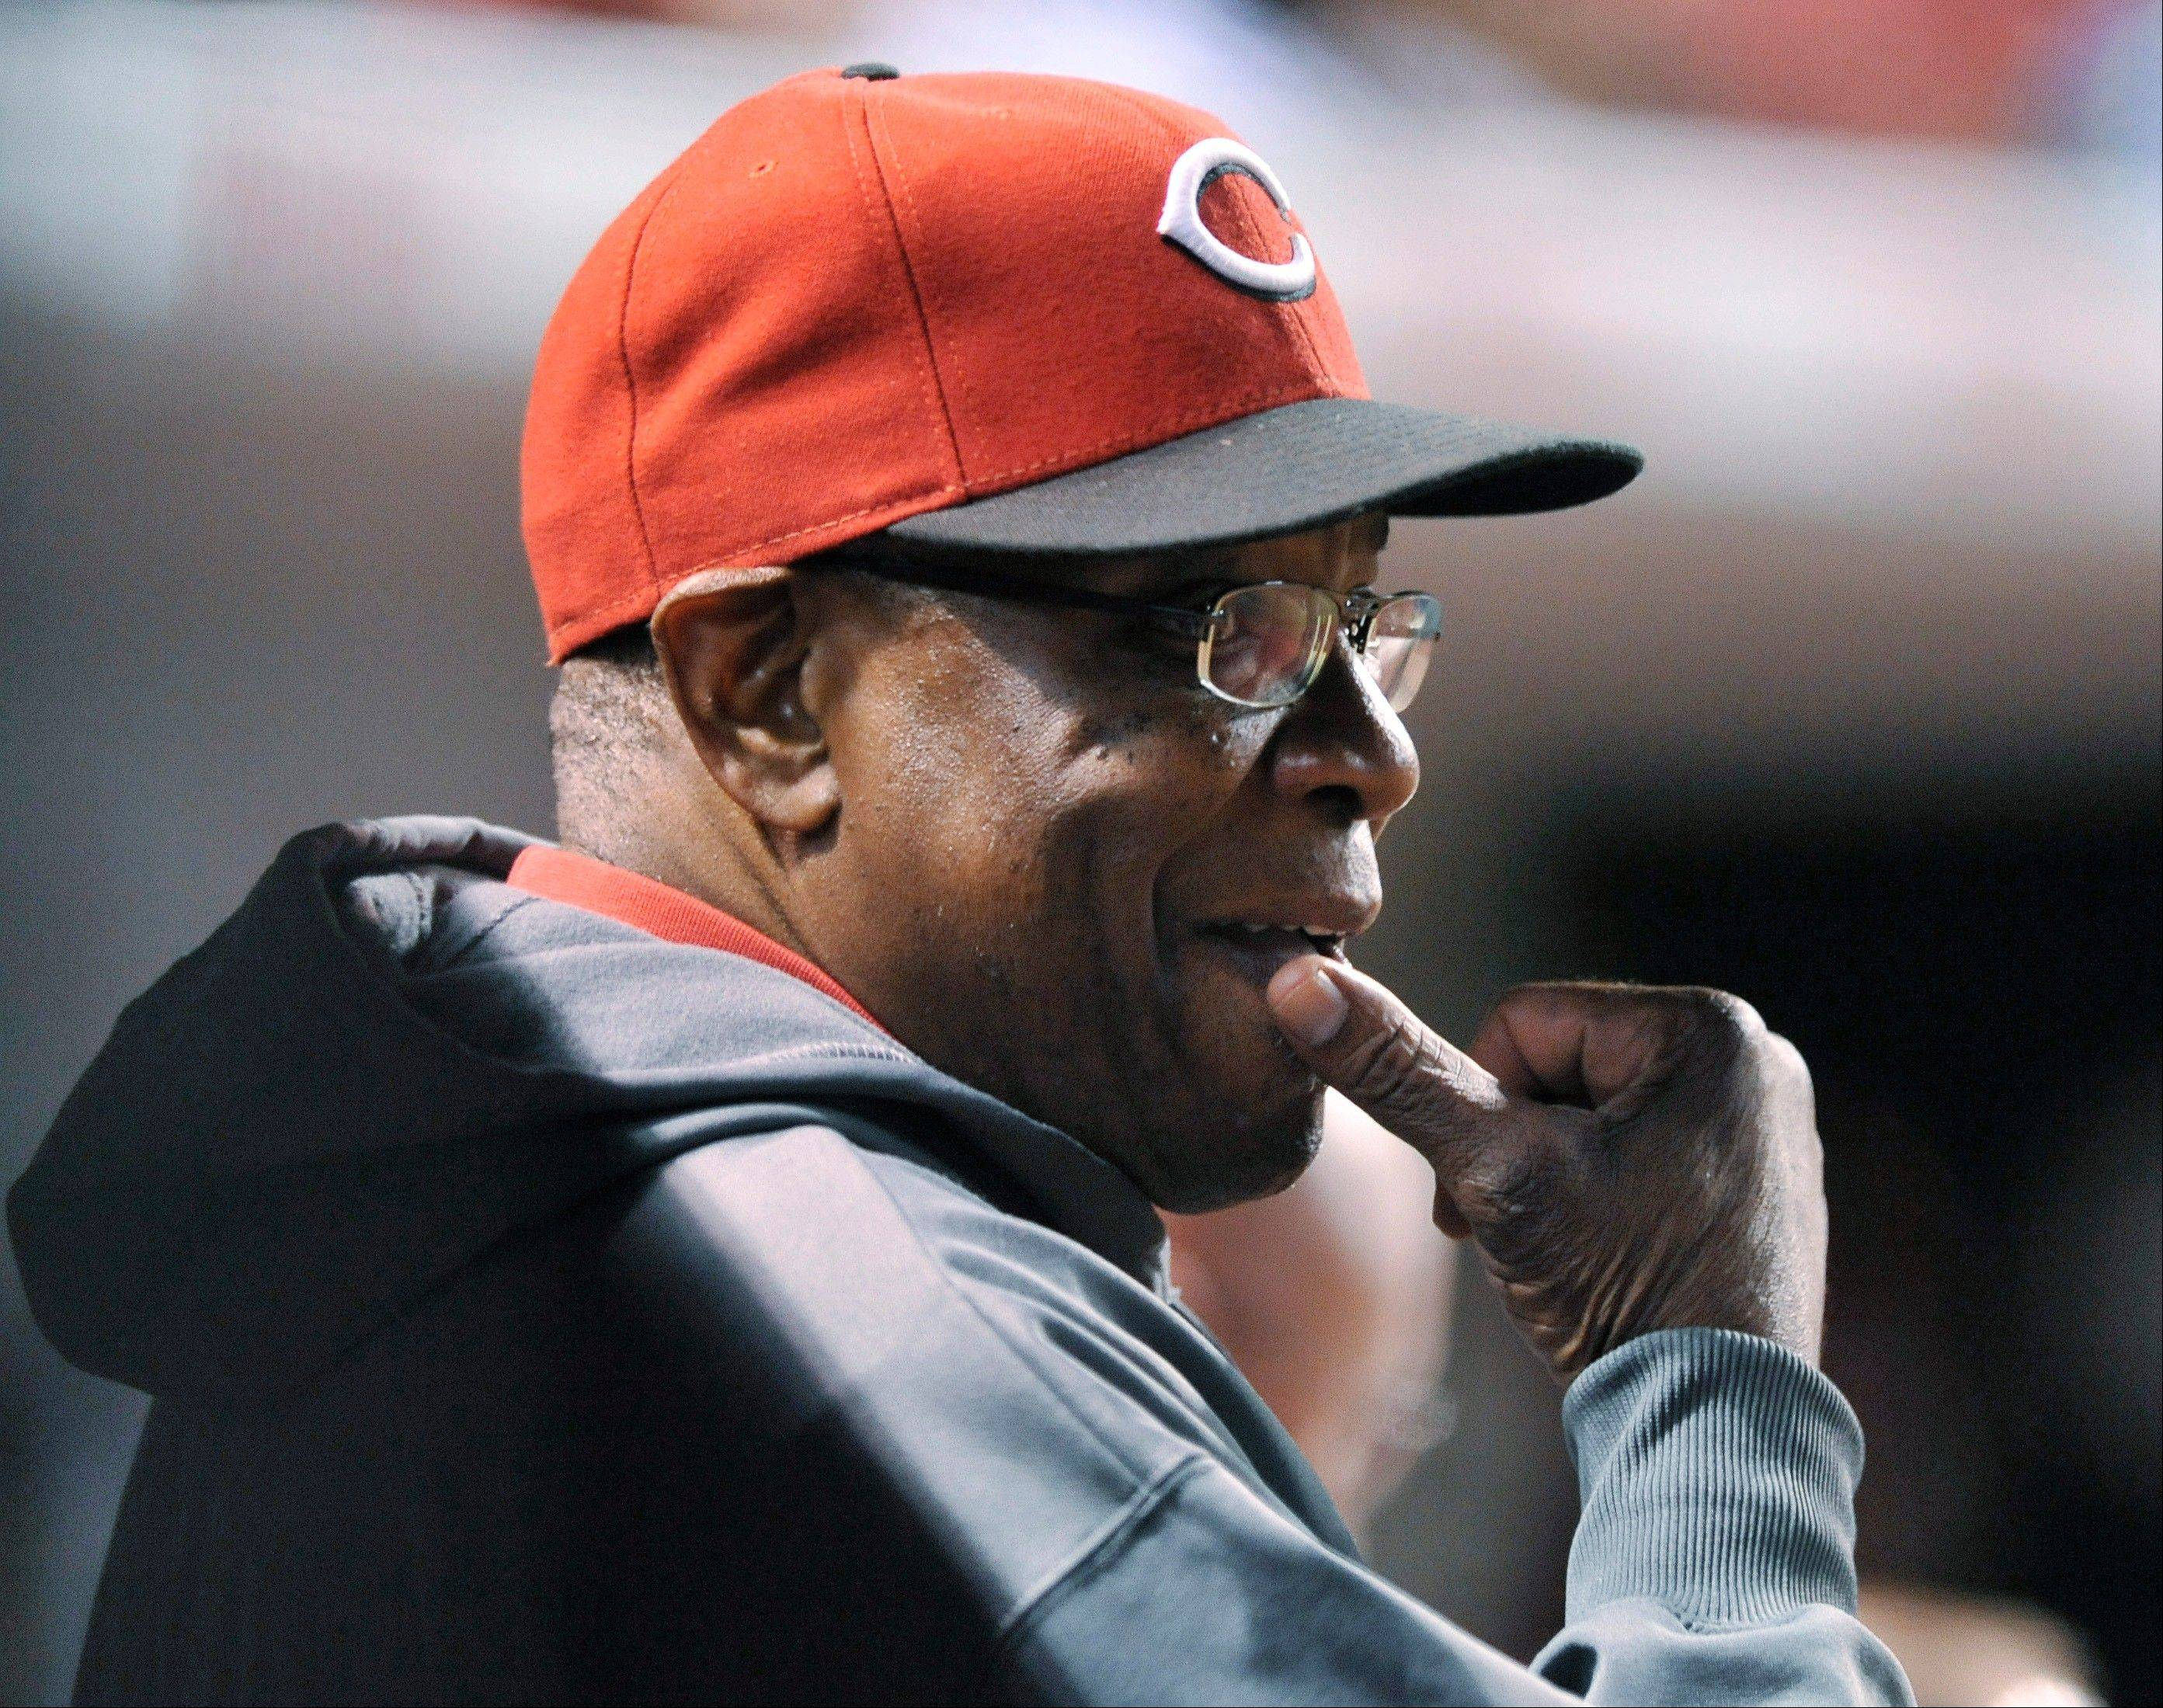 Cincinnati Reds manager Dusty Baker watches during the seventh inning of a game against the Chicago Cubs on Tuesday. He was hospitalized the next day.